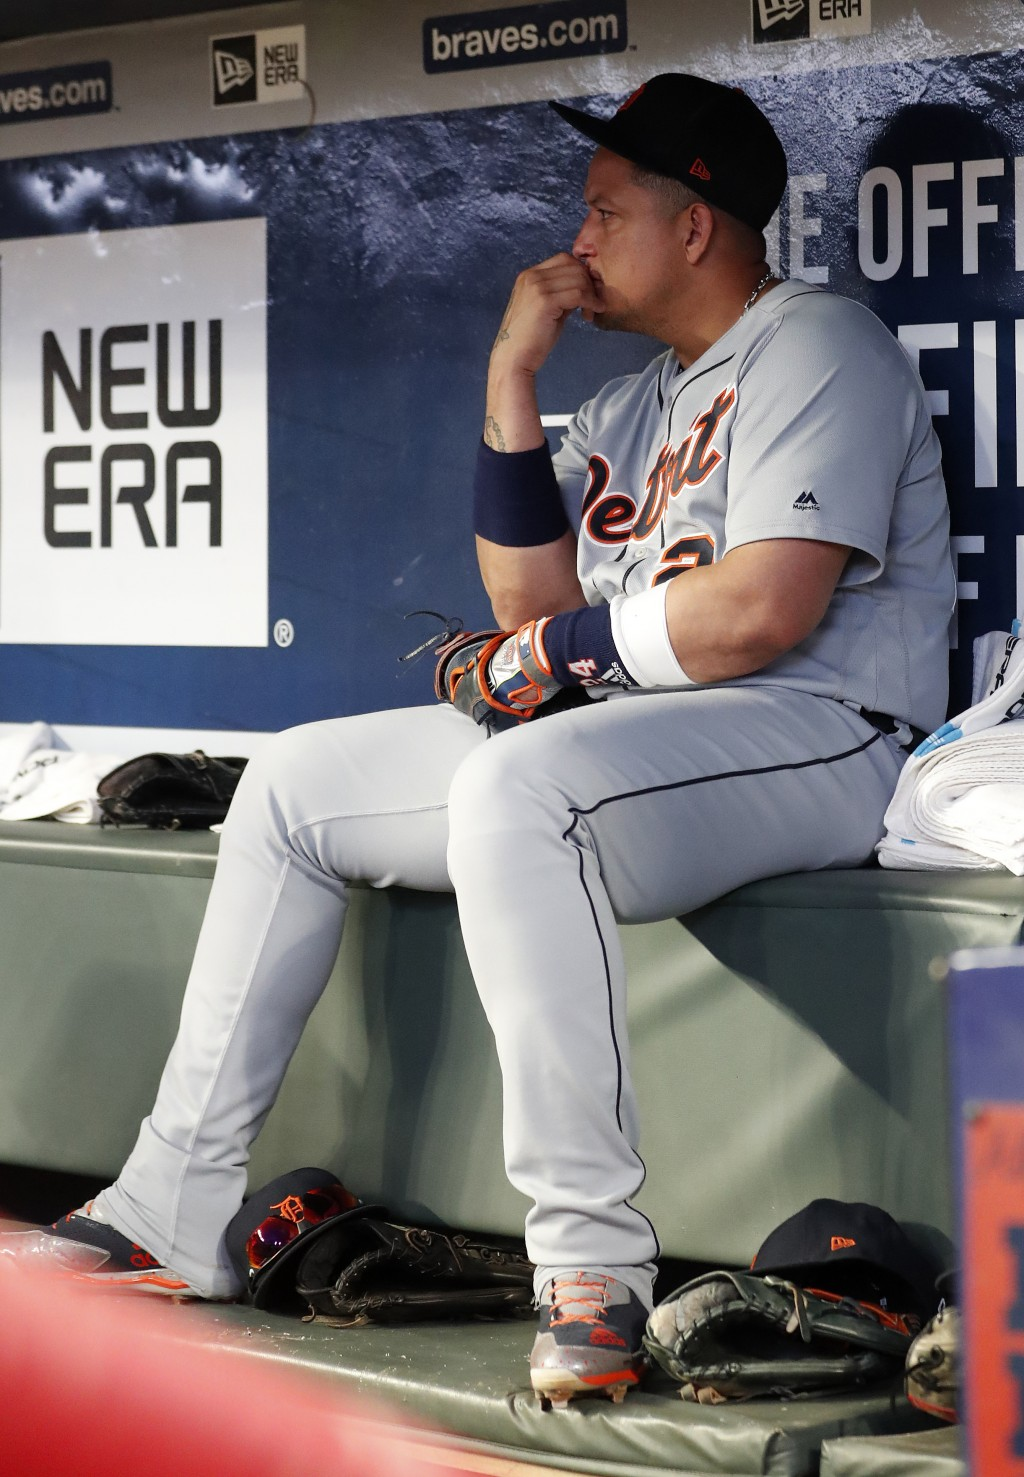 Detroit Tigers first baseman Miguel Cabrera sits in the dugout before being replaced in the lineup during the seventh inning of a baseball game agains